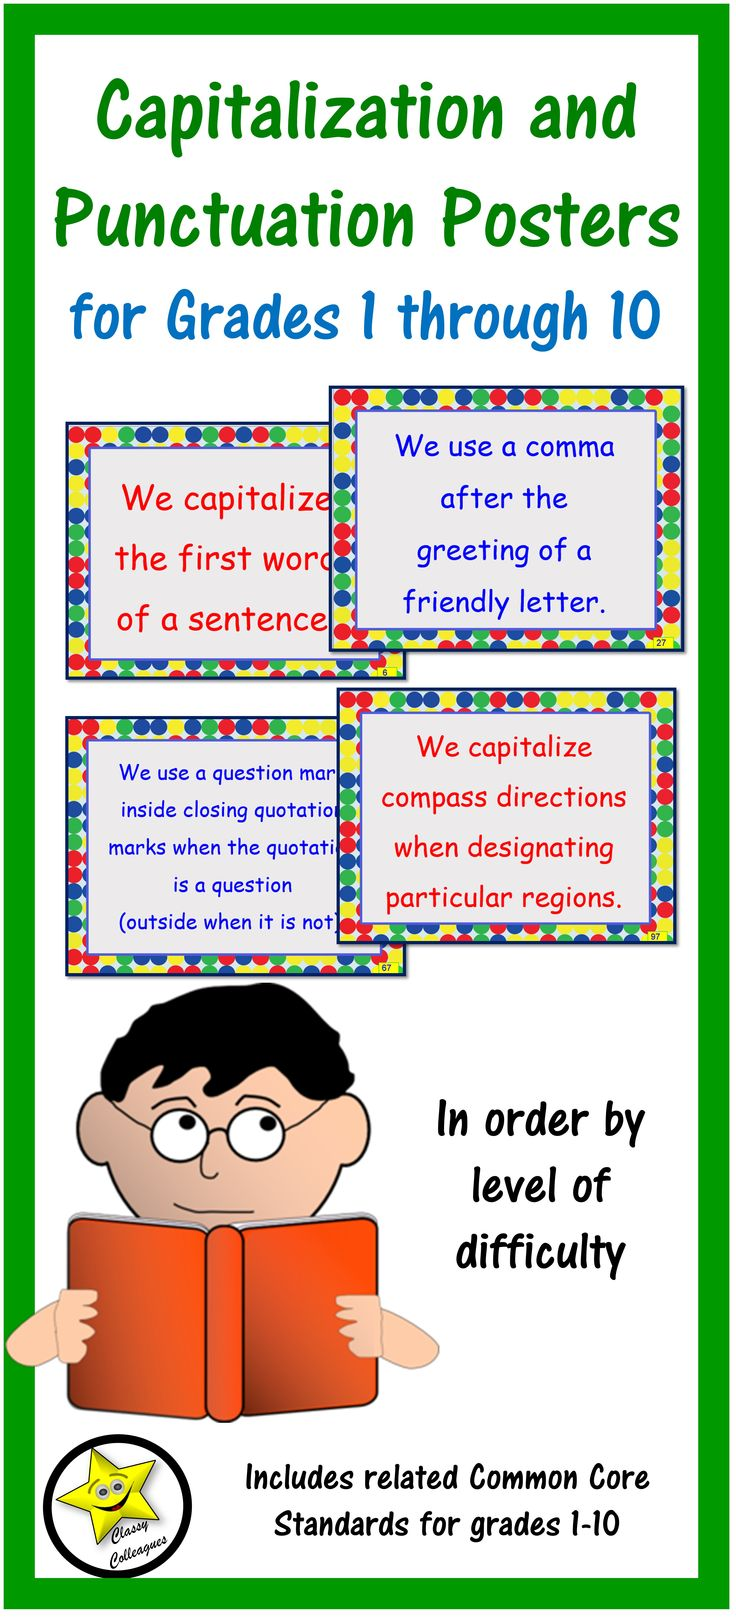 38 best parts of speech images on pinterest parts of speech capitalization and punctuation rule posters for all levels kristyandbryce Image collections